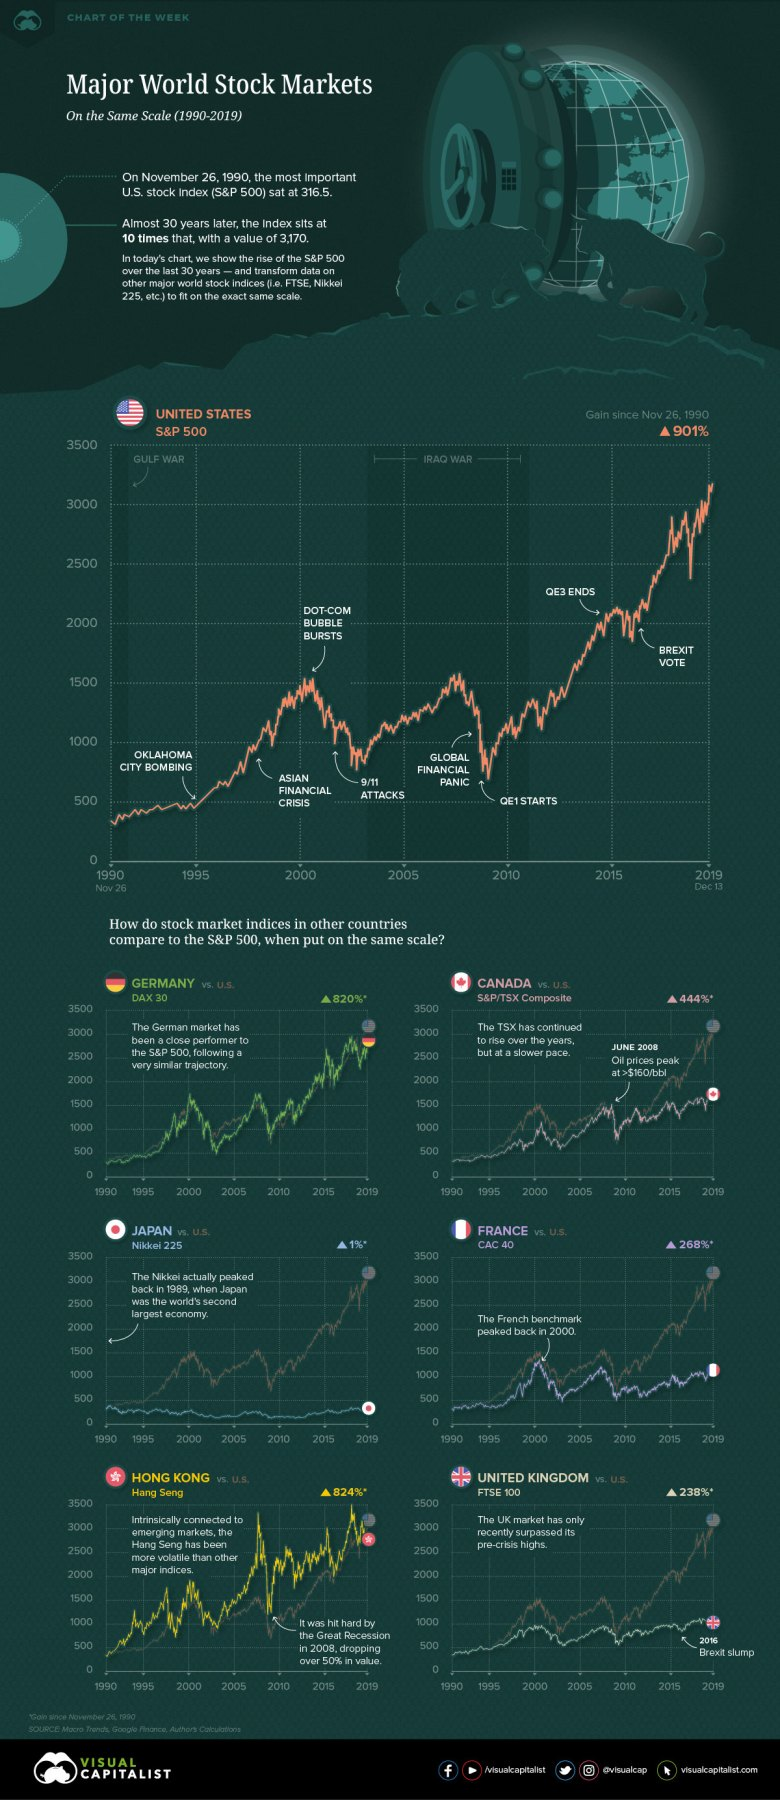 Major stock markets compared to the S&P 500